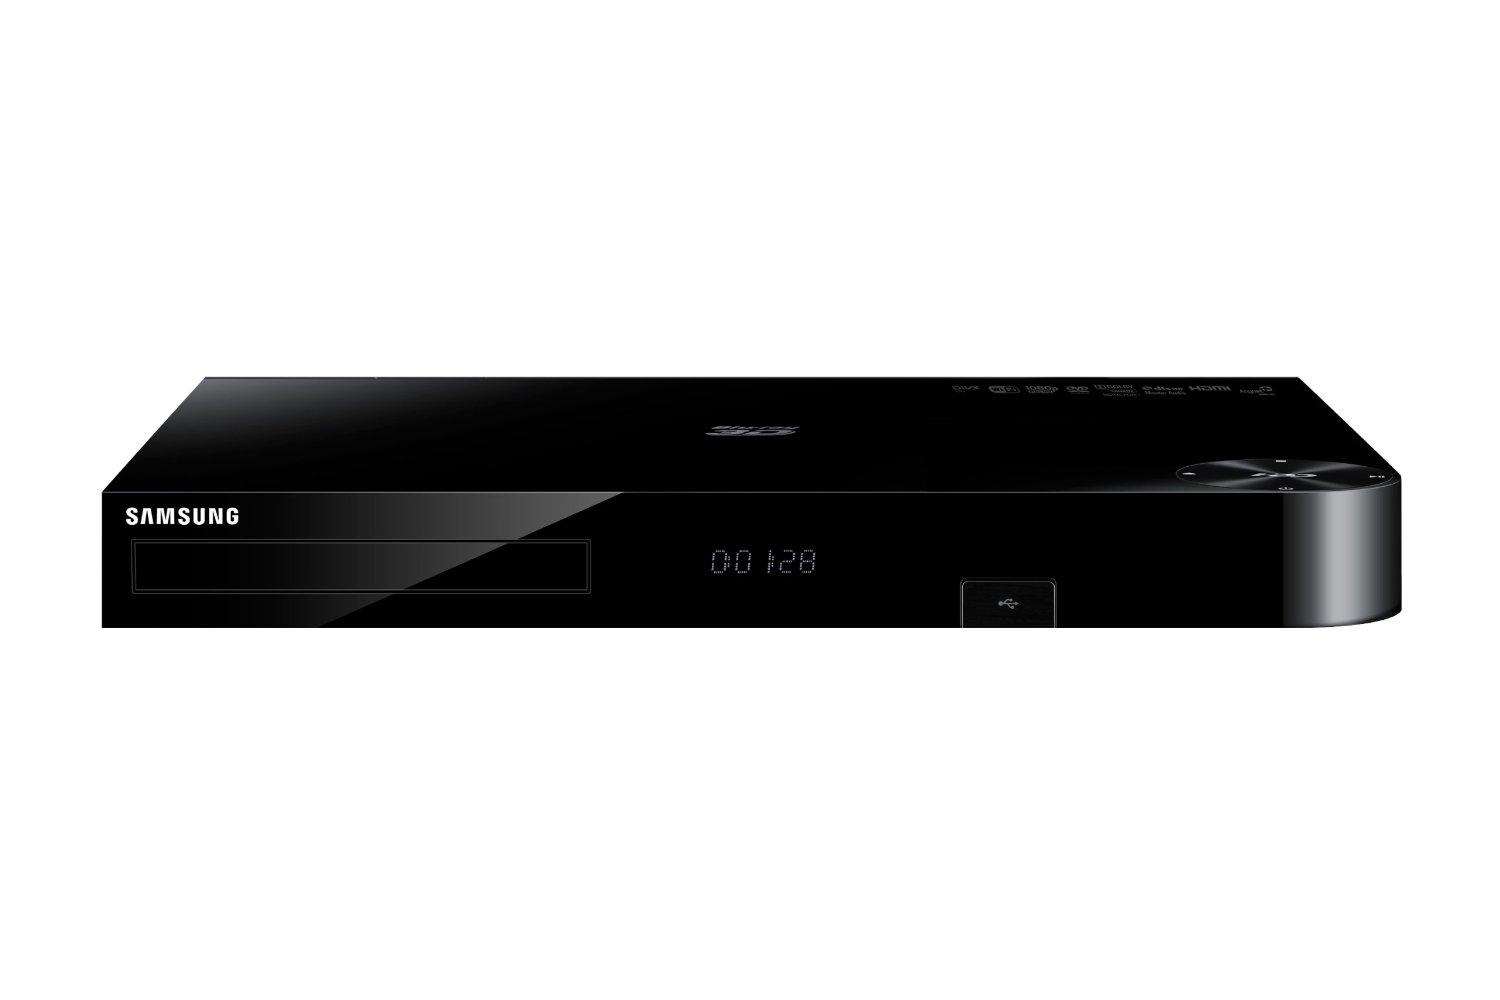 samsung bd h8909s hd recorder und satelliten receiver mit twin tuner und 3d blu ray player 1tb. Black Bedroom Furniture Sets. Home Design Ideas